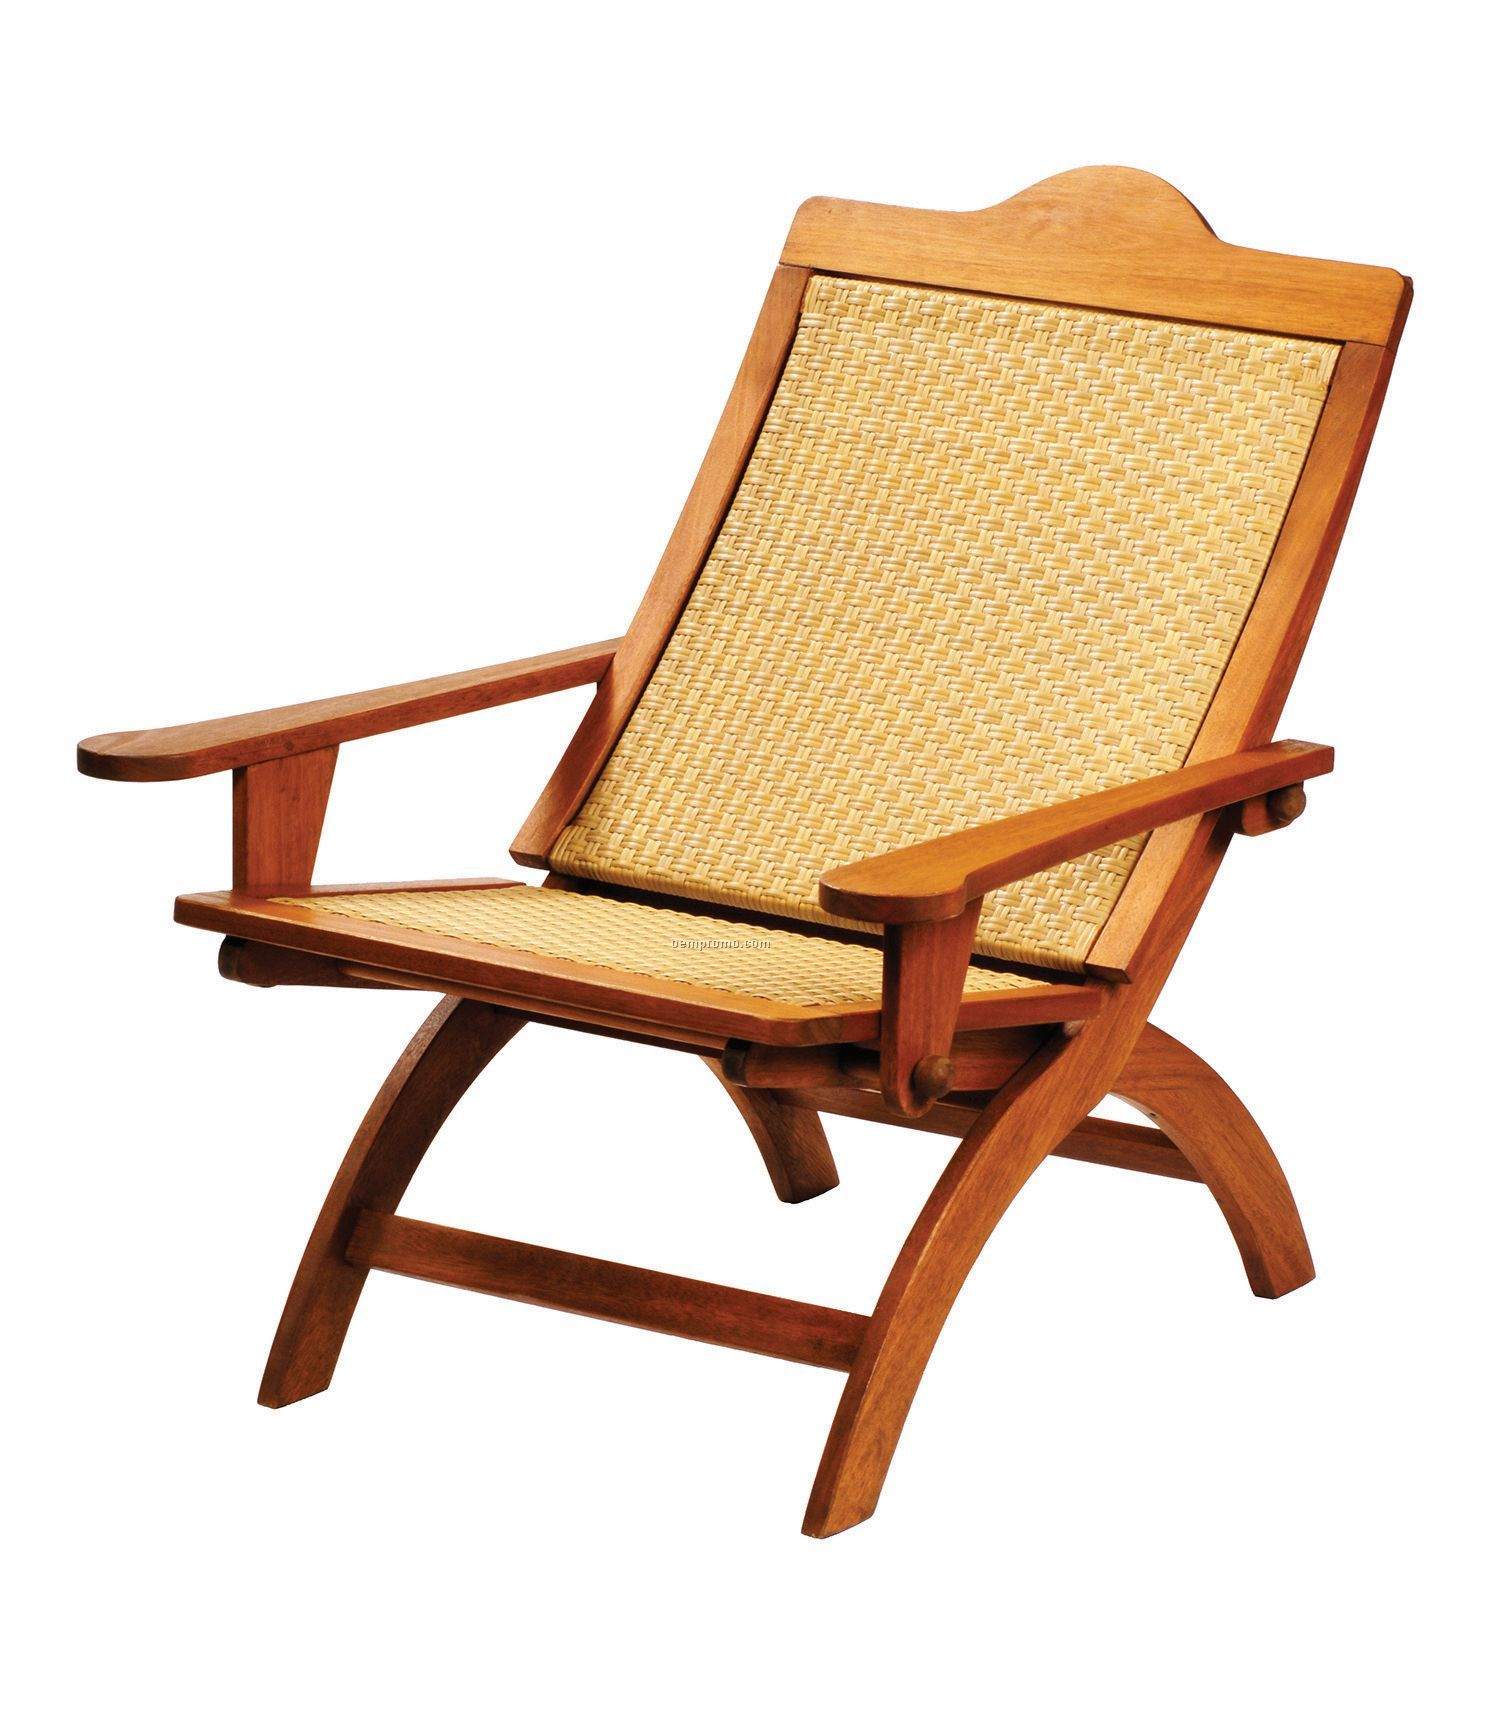 Achla designs campeche wood chair china wholesale